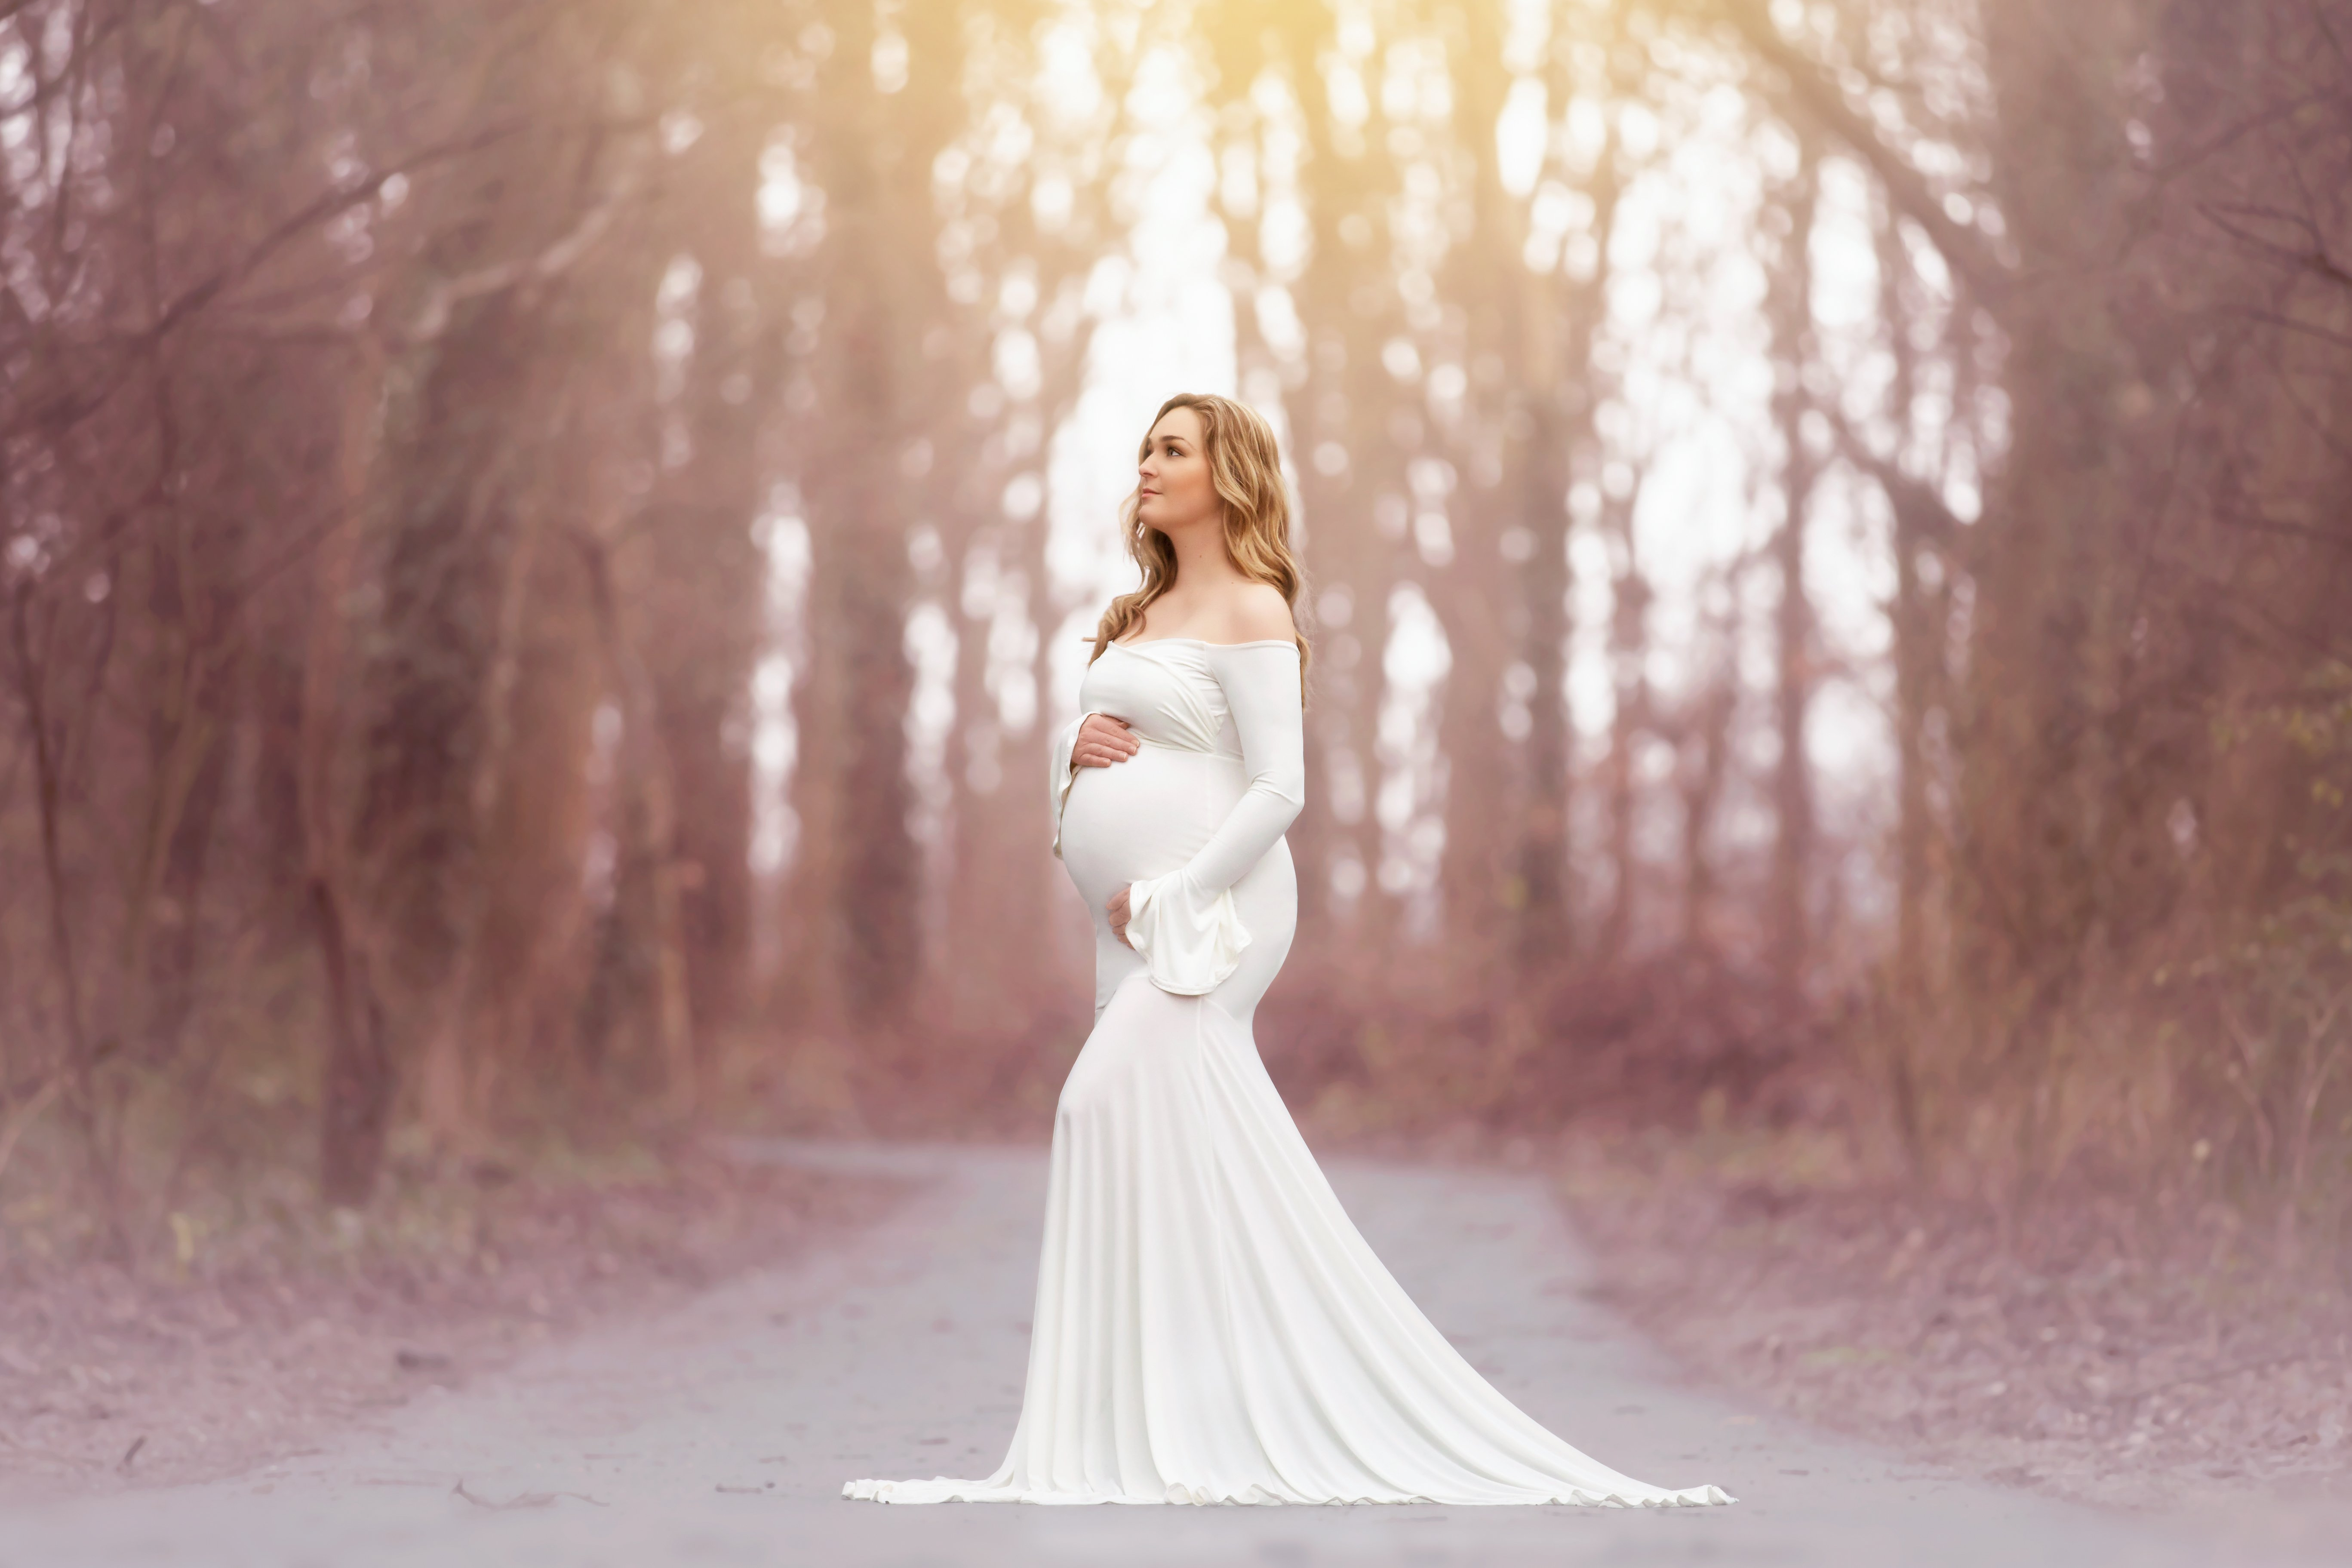 Scarlett maternity gowns photography